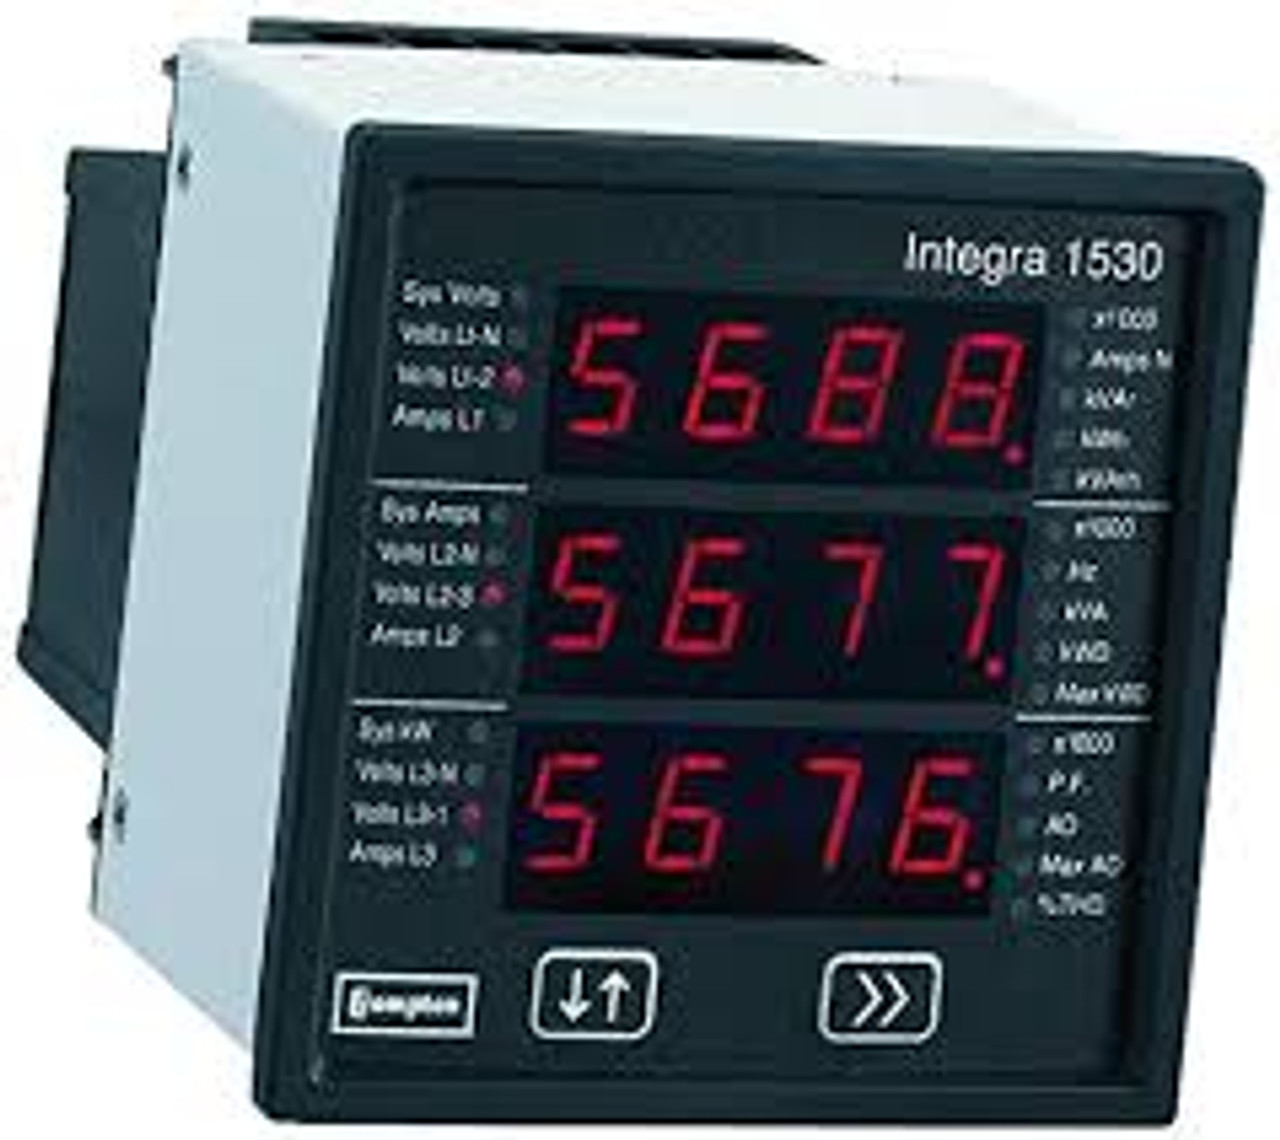 1544 Inetgra Multi-Function Meters - ANSI 3-Phase 4 Wire